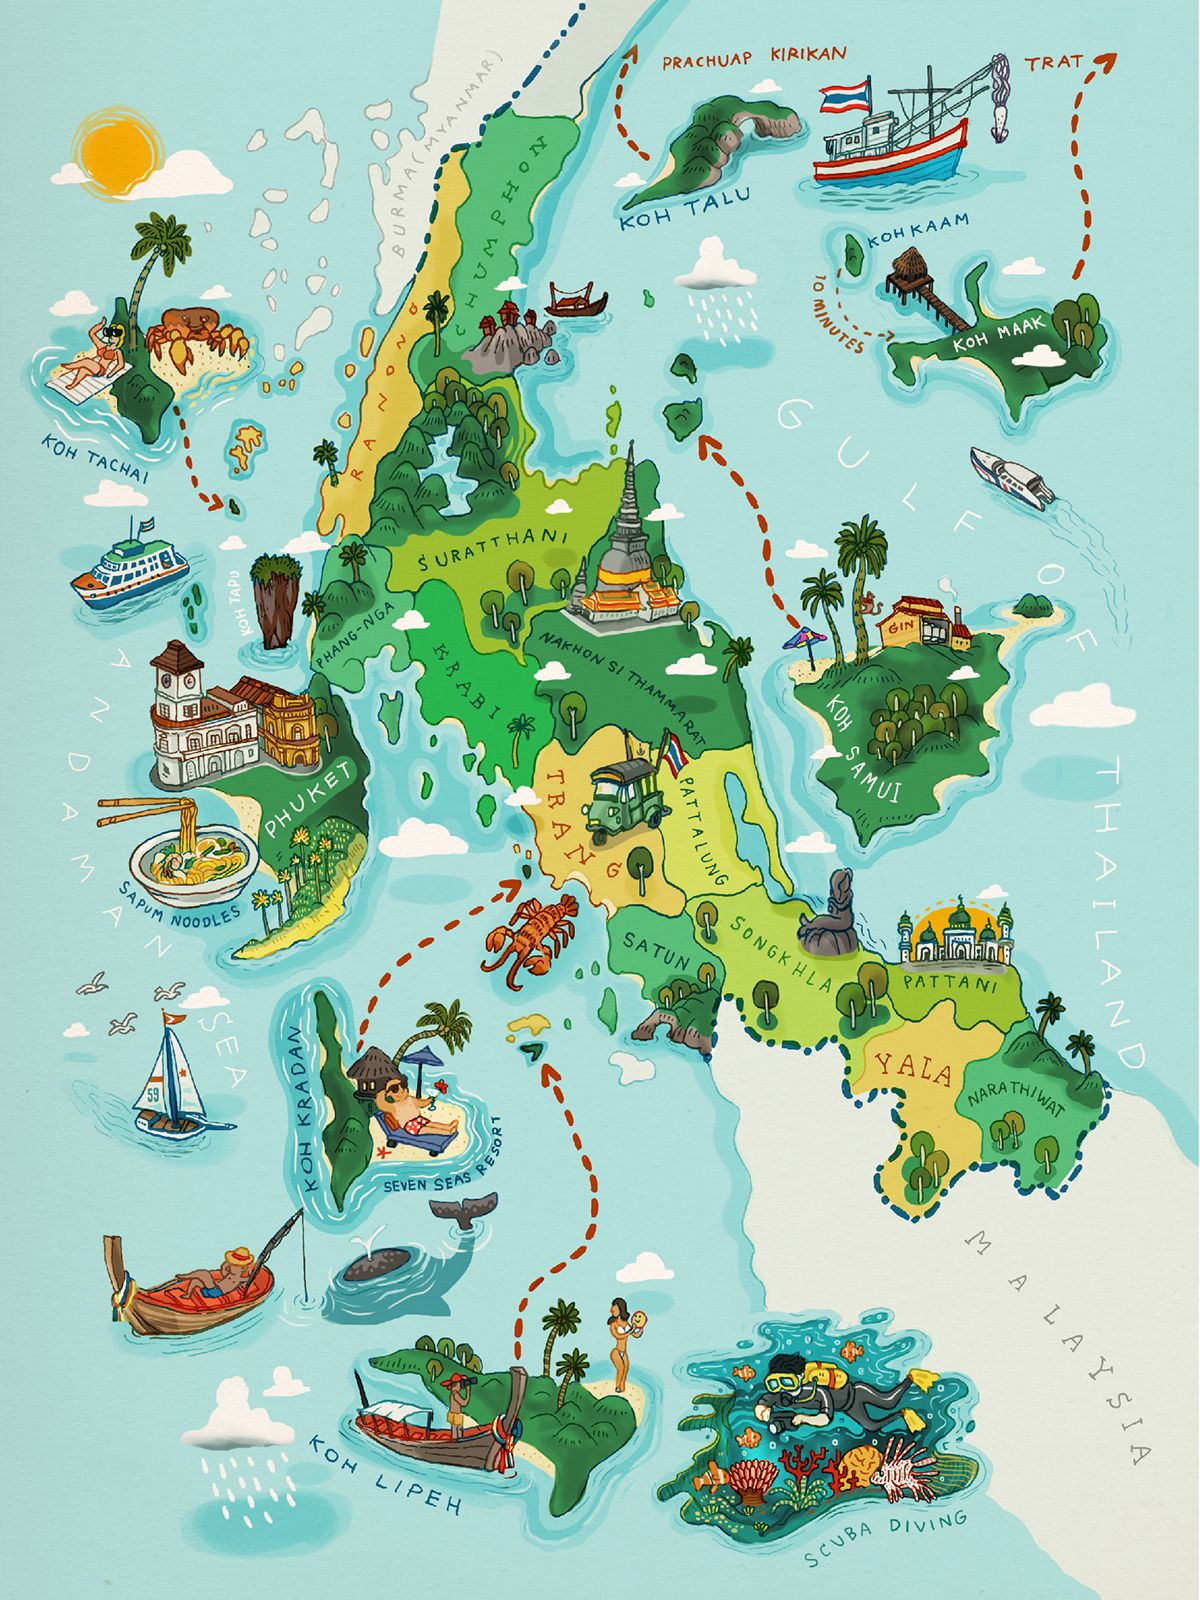 A Map Illustration for the tourist pocket book A TWIST OF THAILAND